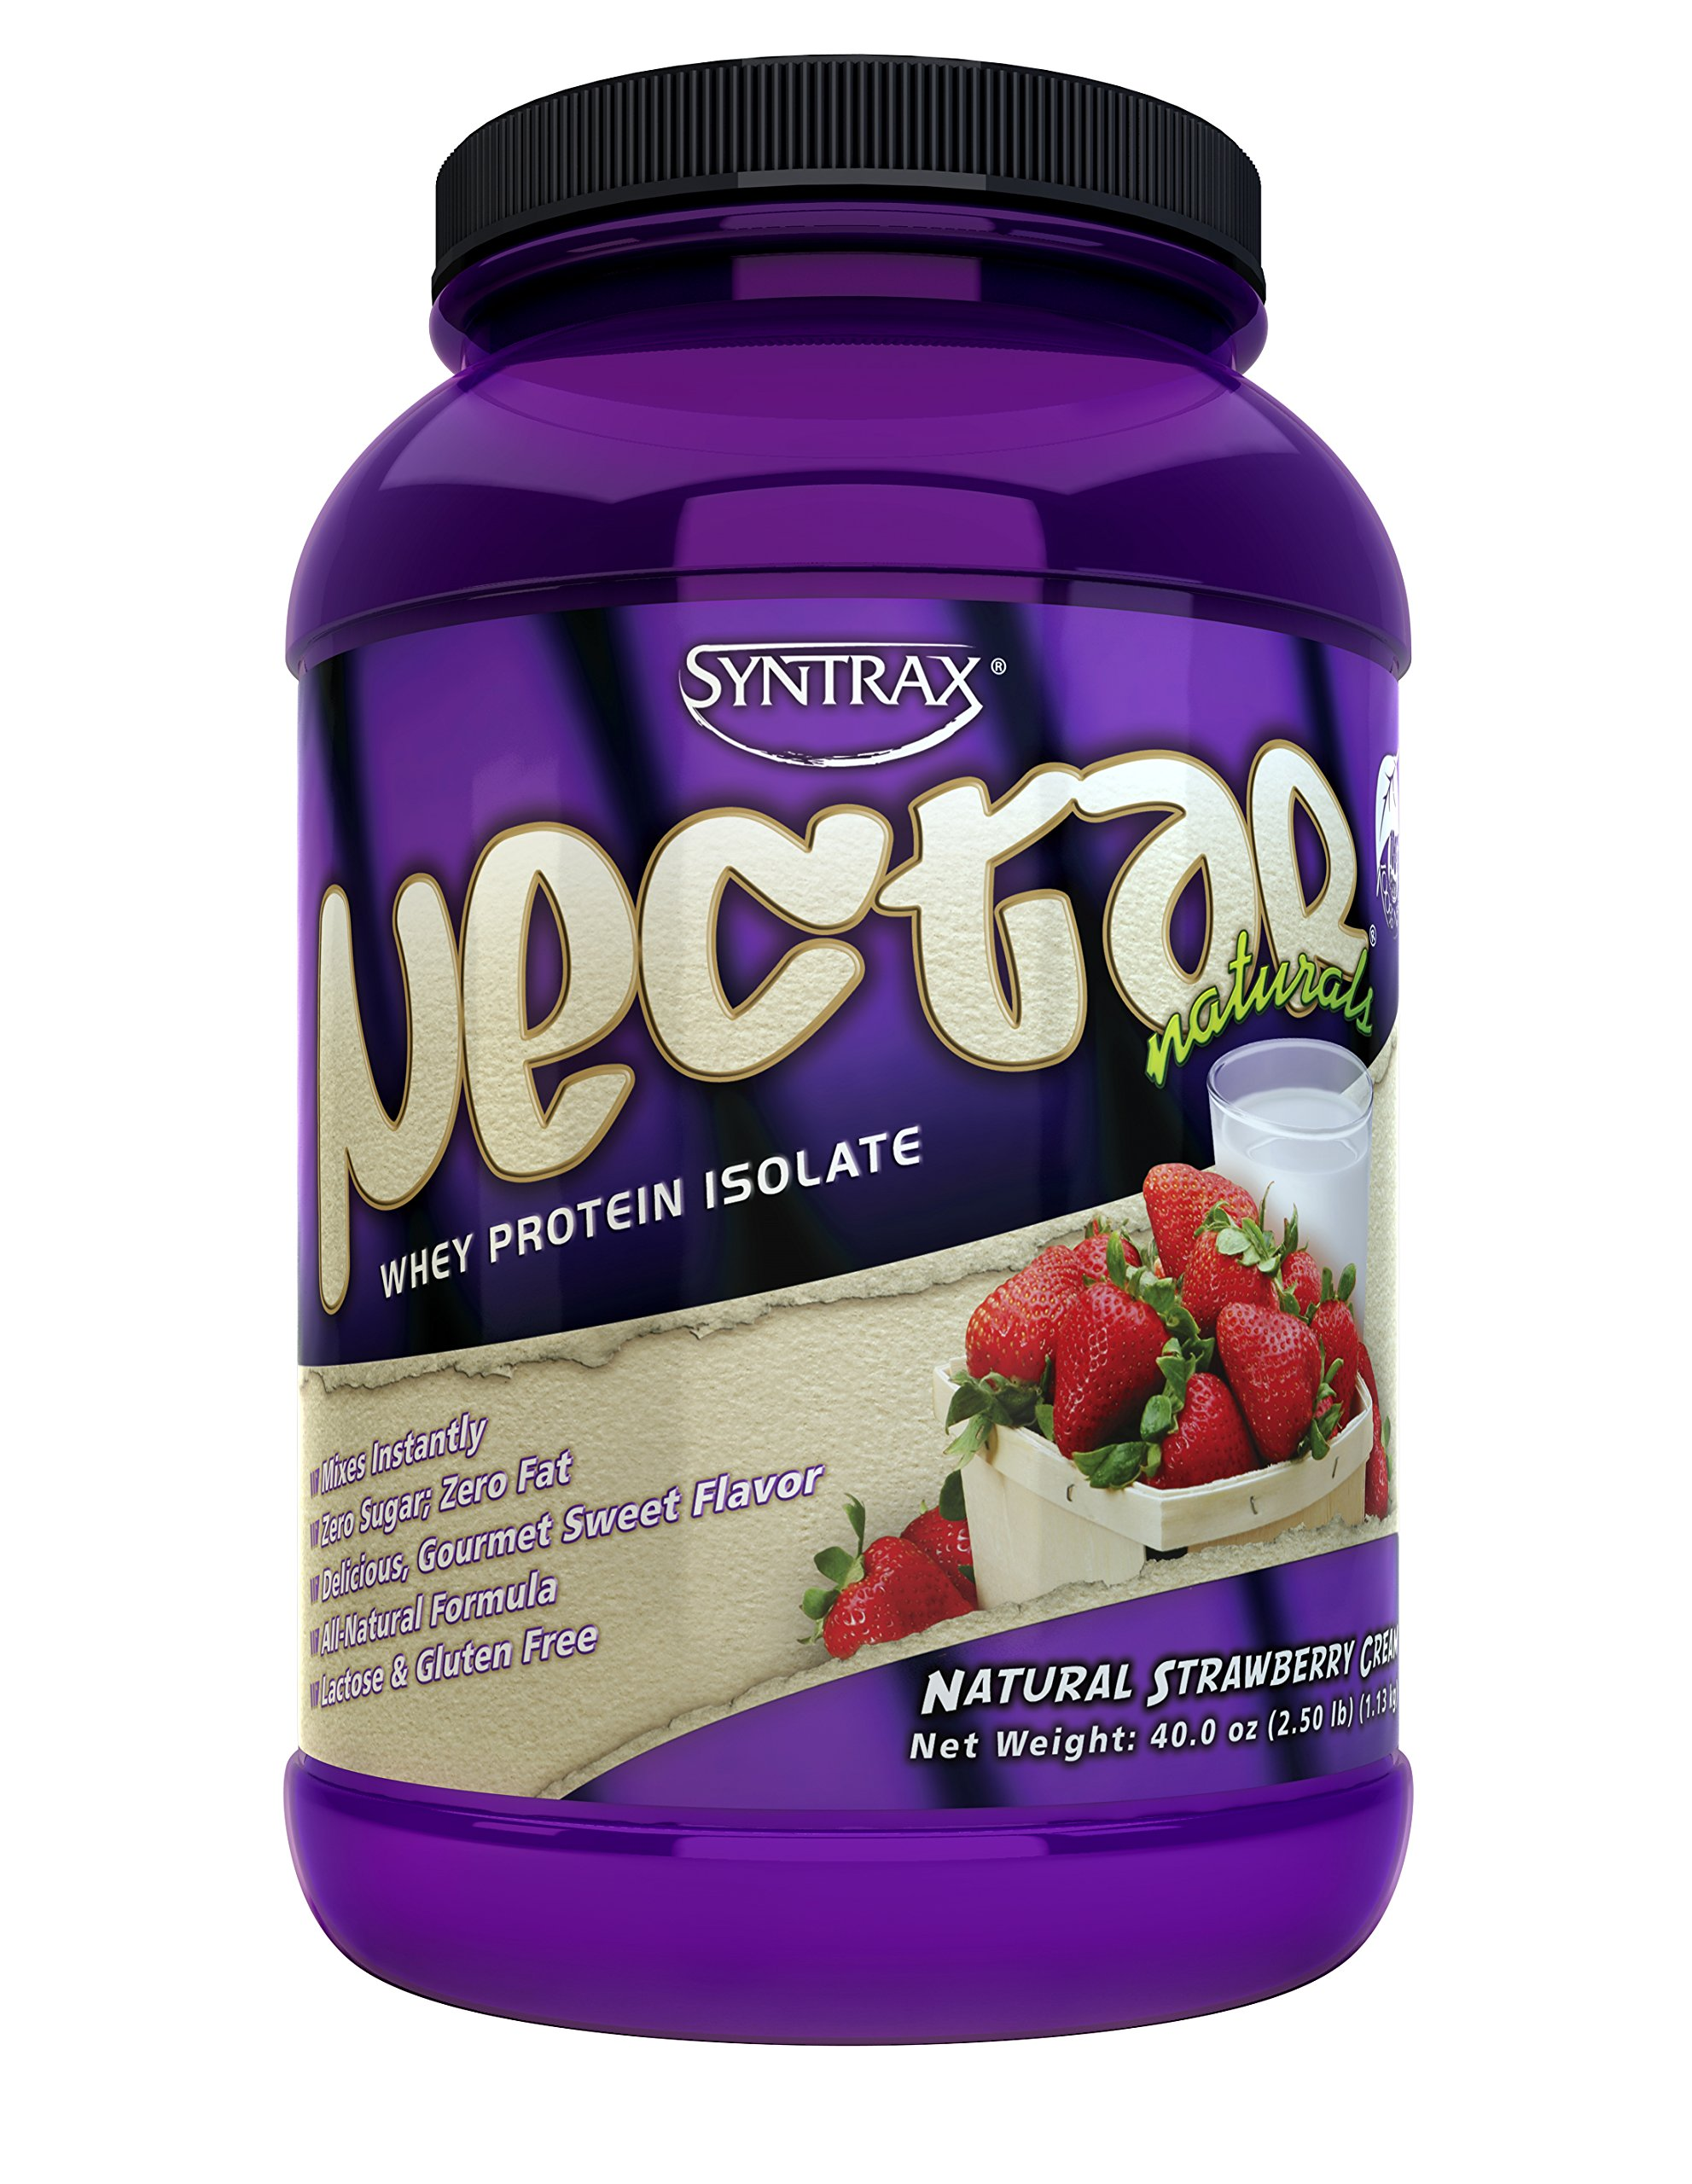 Nectar Naturals, Natural Strawberry Cream, 2.5 Pounds